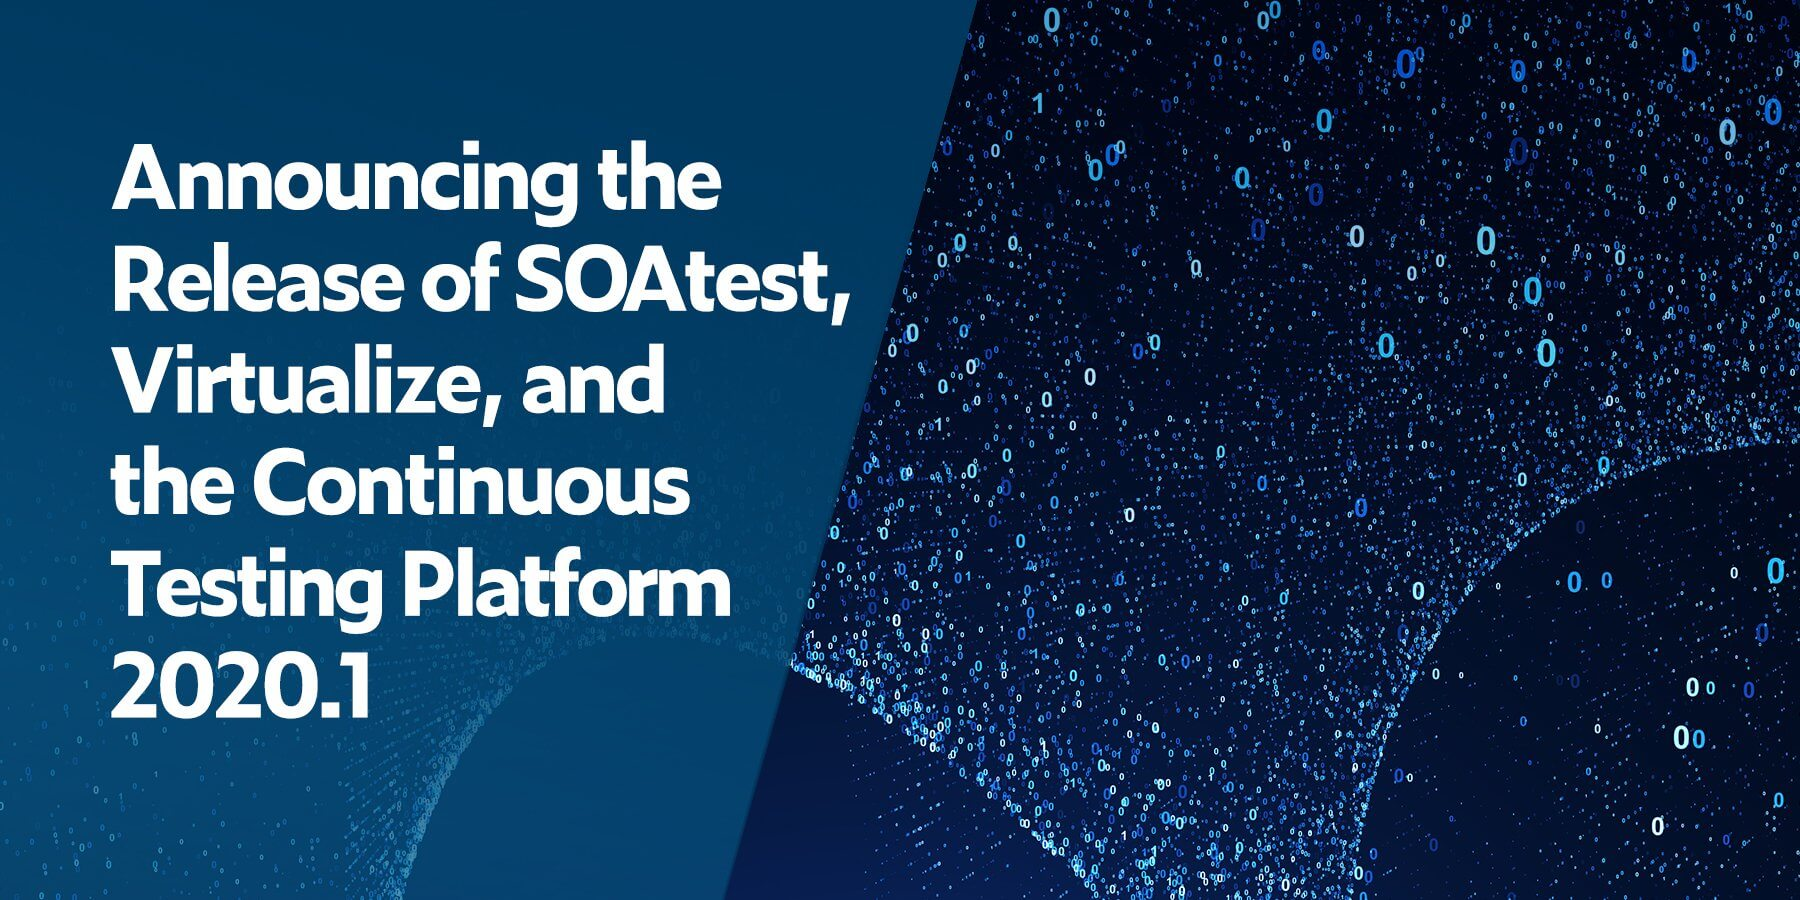 Announcing the 2020.1 Release of SOAtest, Virtualize, and the Continuous Testing Platform